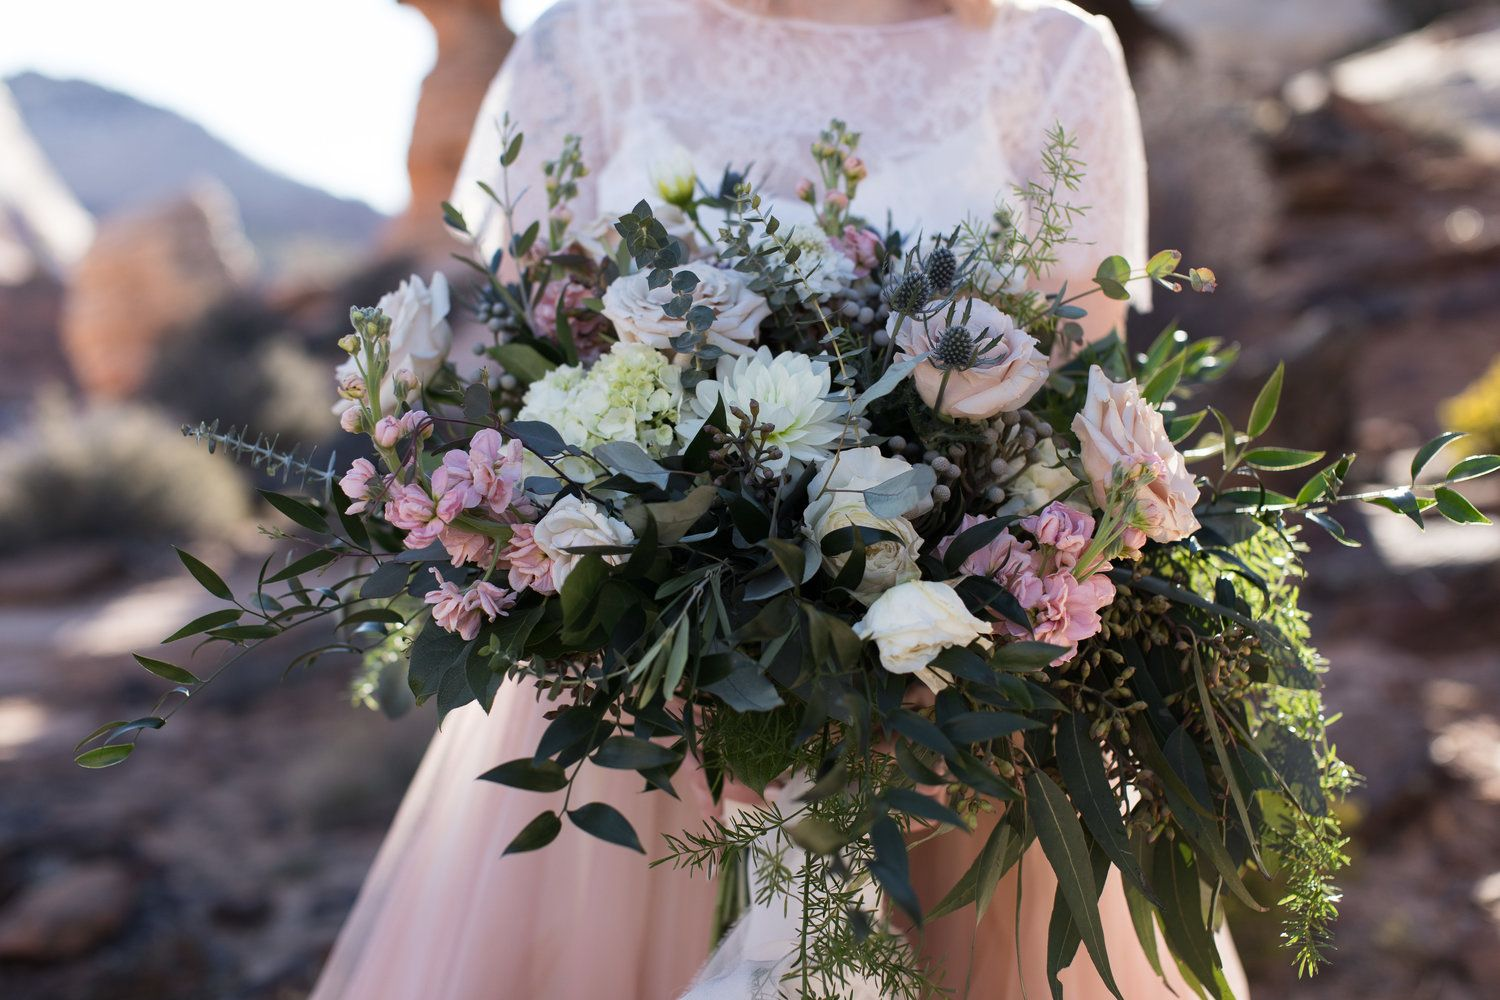 4d320344f275 Chantel Lauren Mae Gown rose gold wedding dress hand painted tyler rye zion  national park bride colored pink color large bouquet mauv flowers